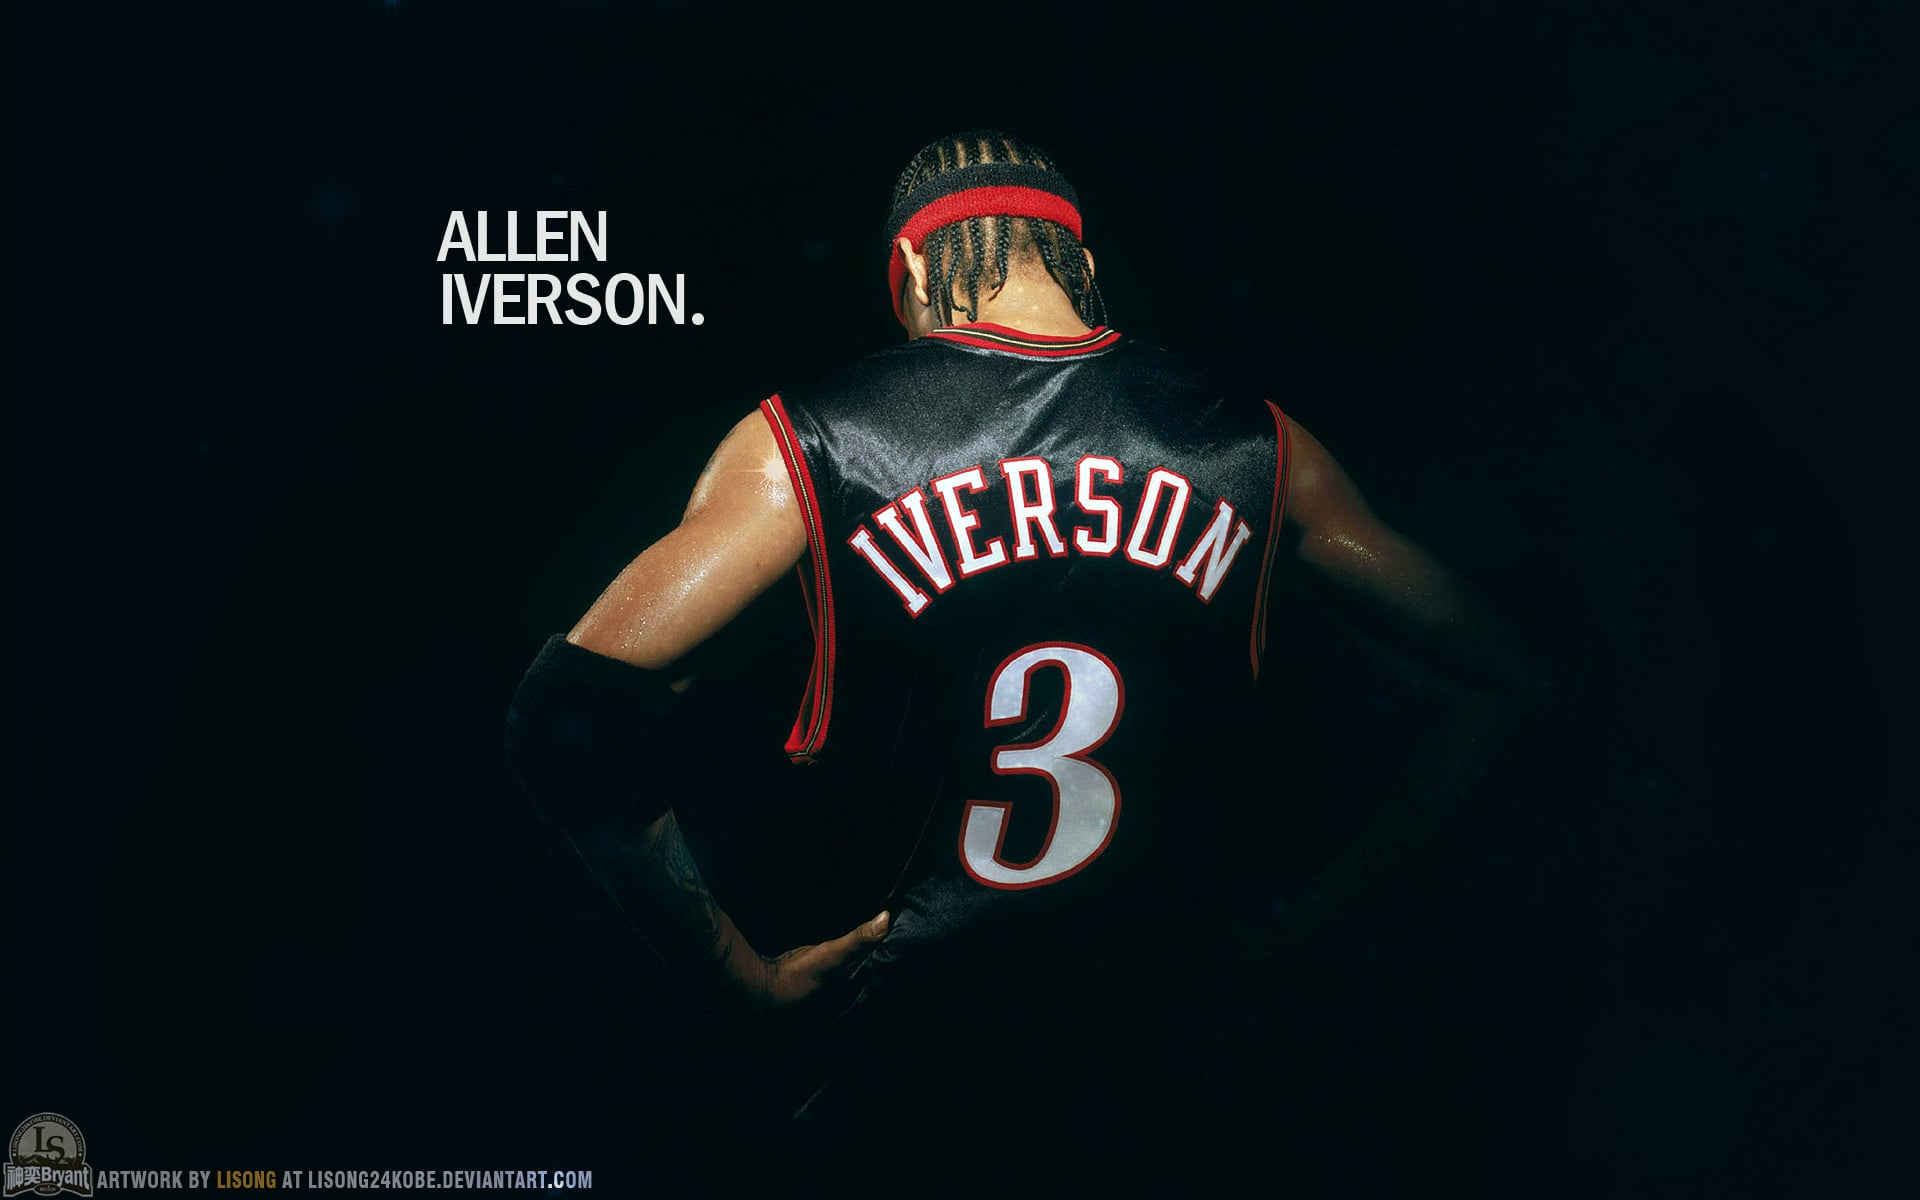 Allen Iverson Wallpaper 4k 1920x1200 Download Hd Wallpaper Wallpapertip